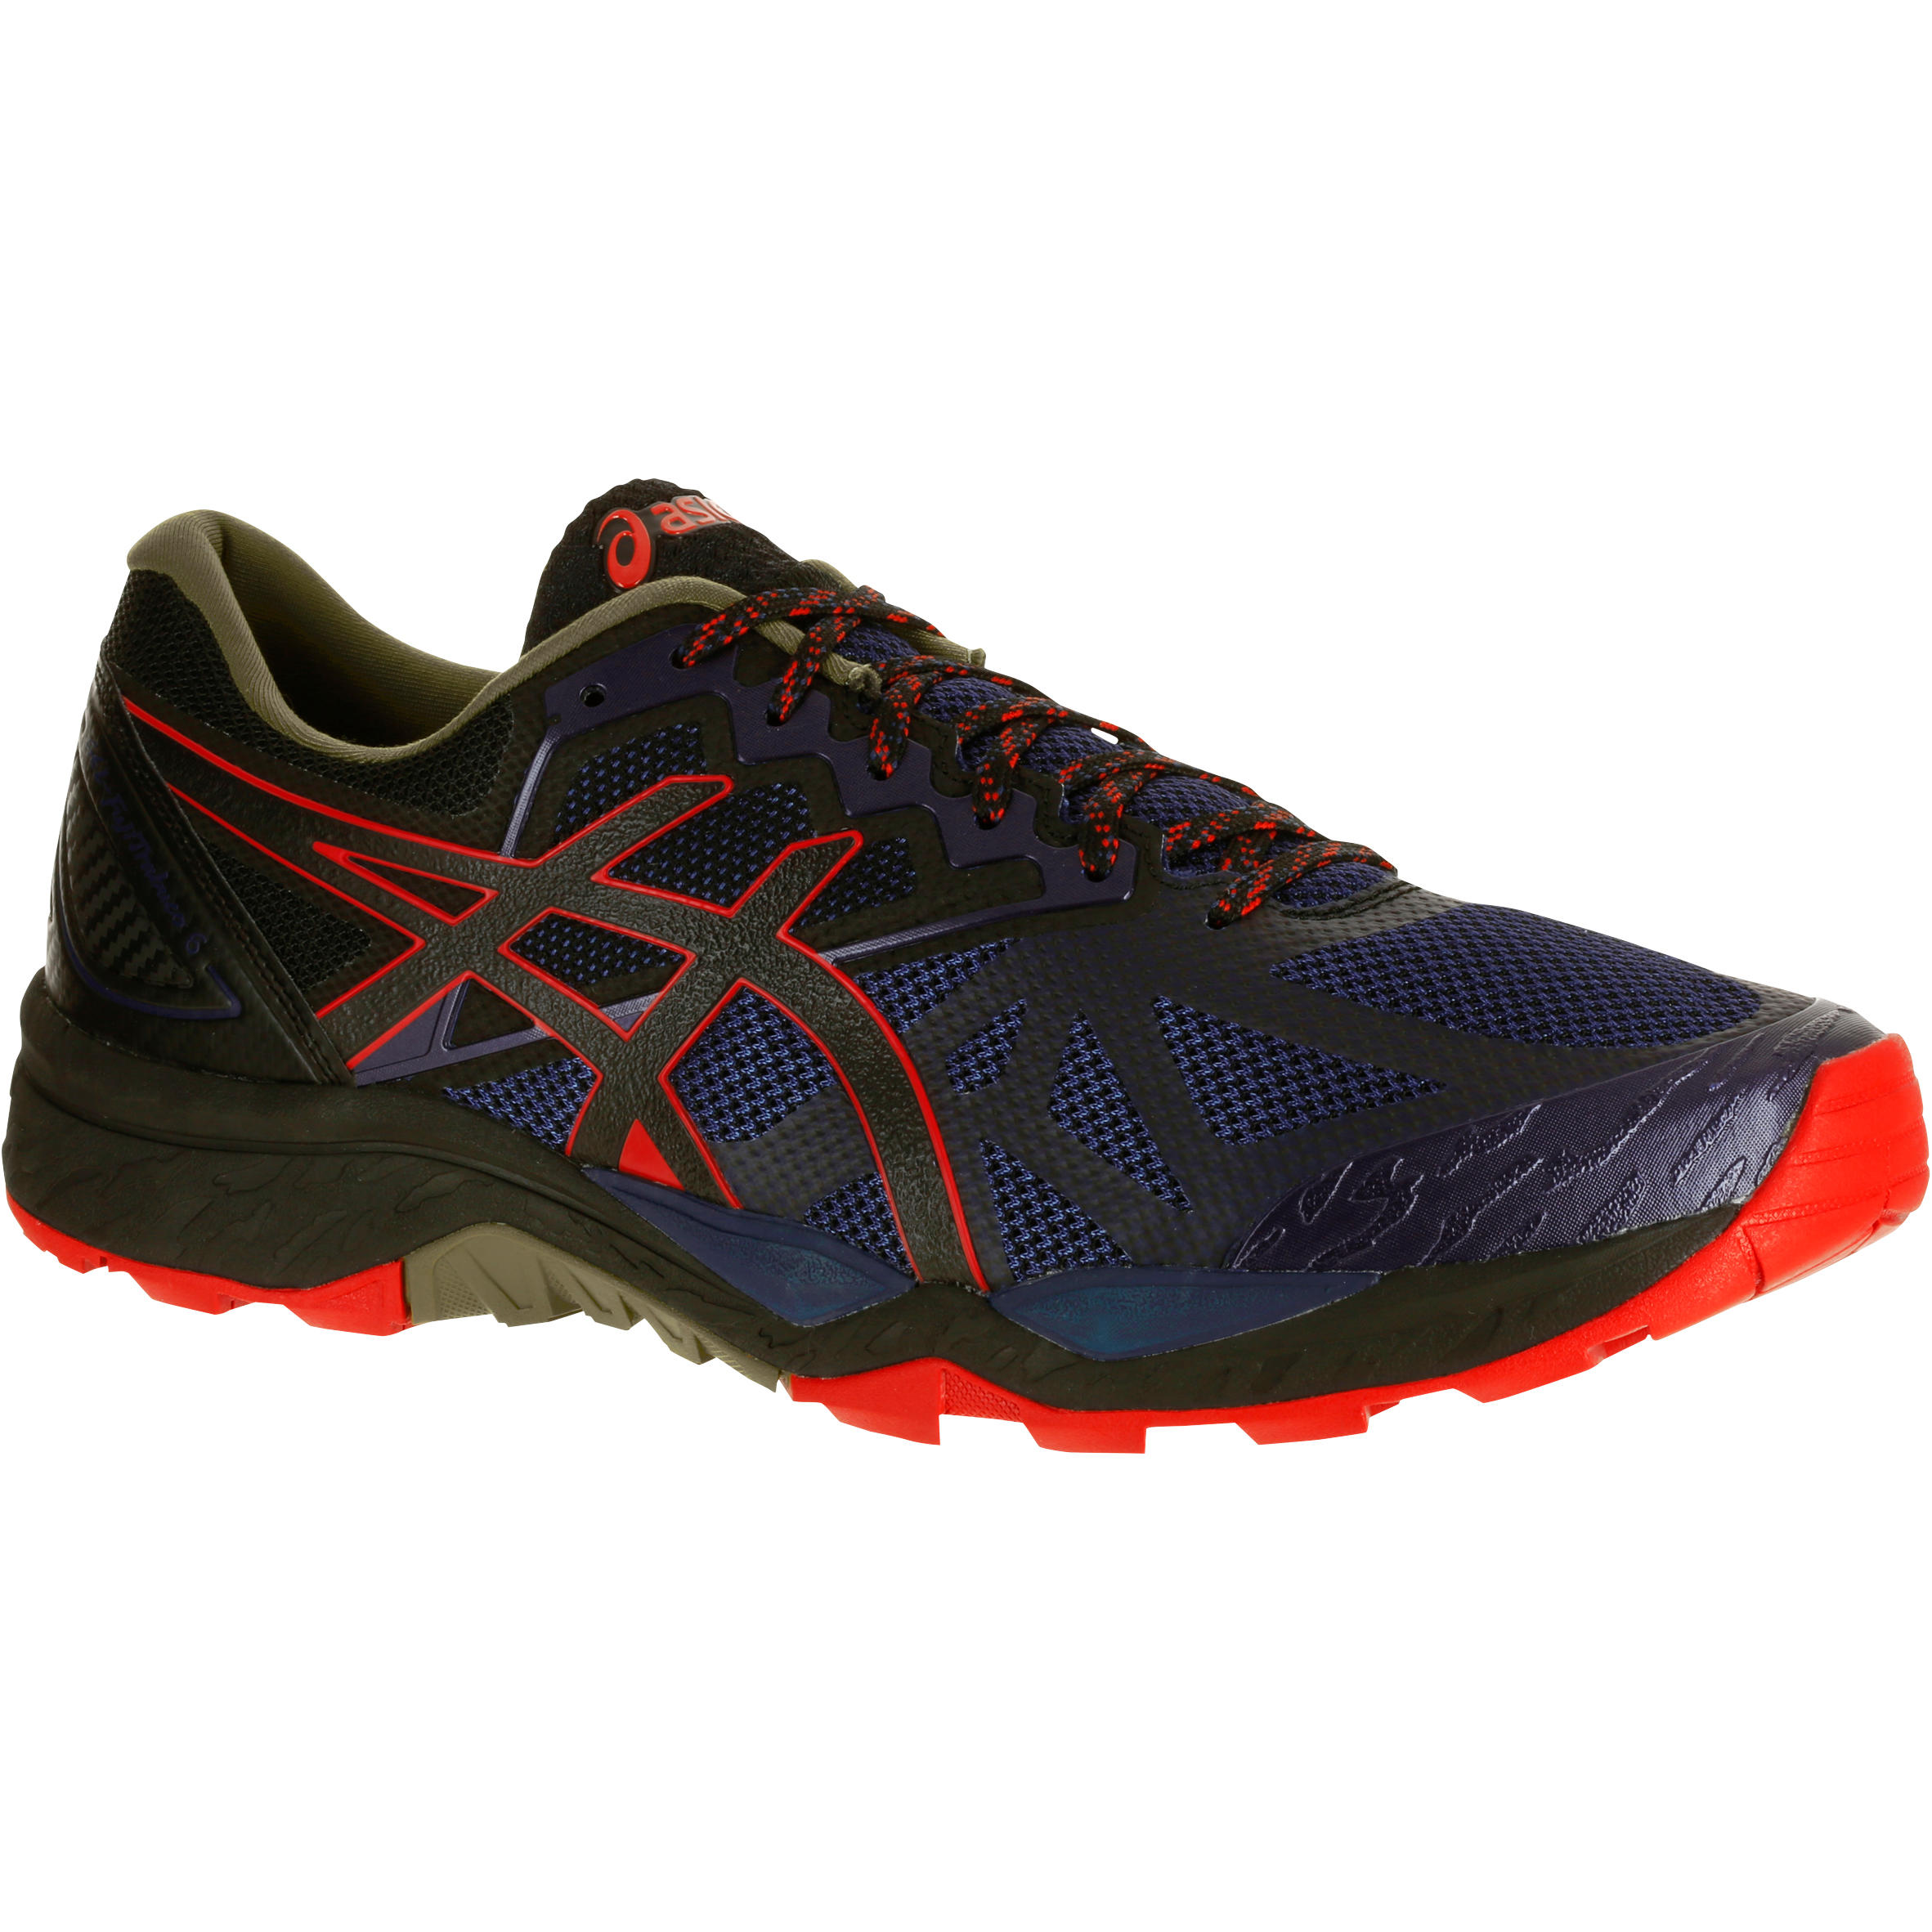 Teail Homme Teail Asics Chaussures Chaussures Asics Chaussures Homme b76ygf